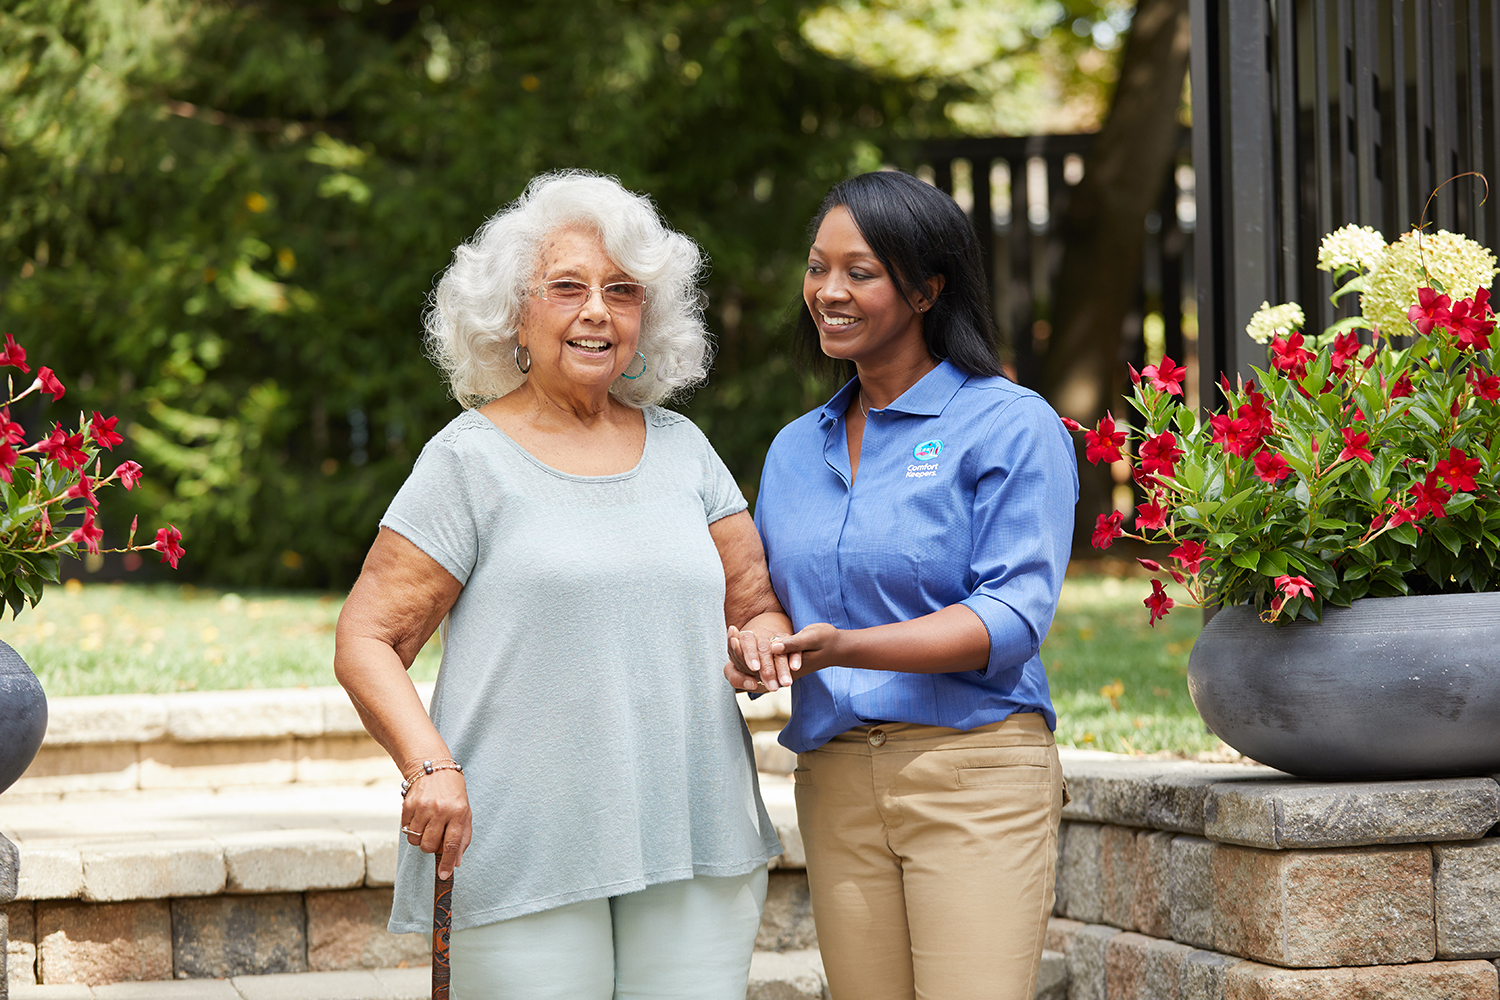 Comfort Keepers Caregiver assists senior walking with a cane